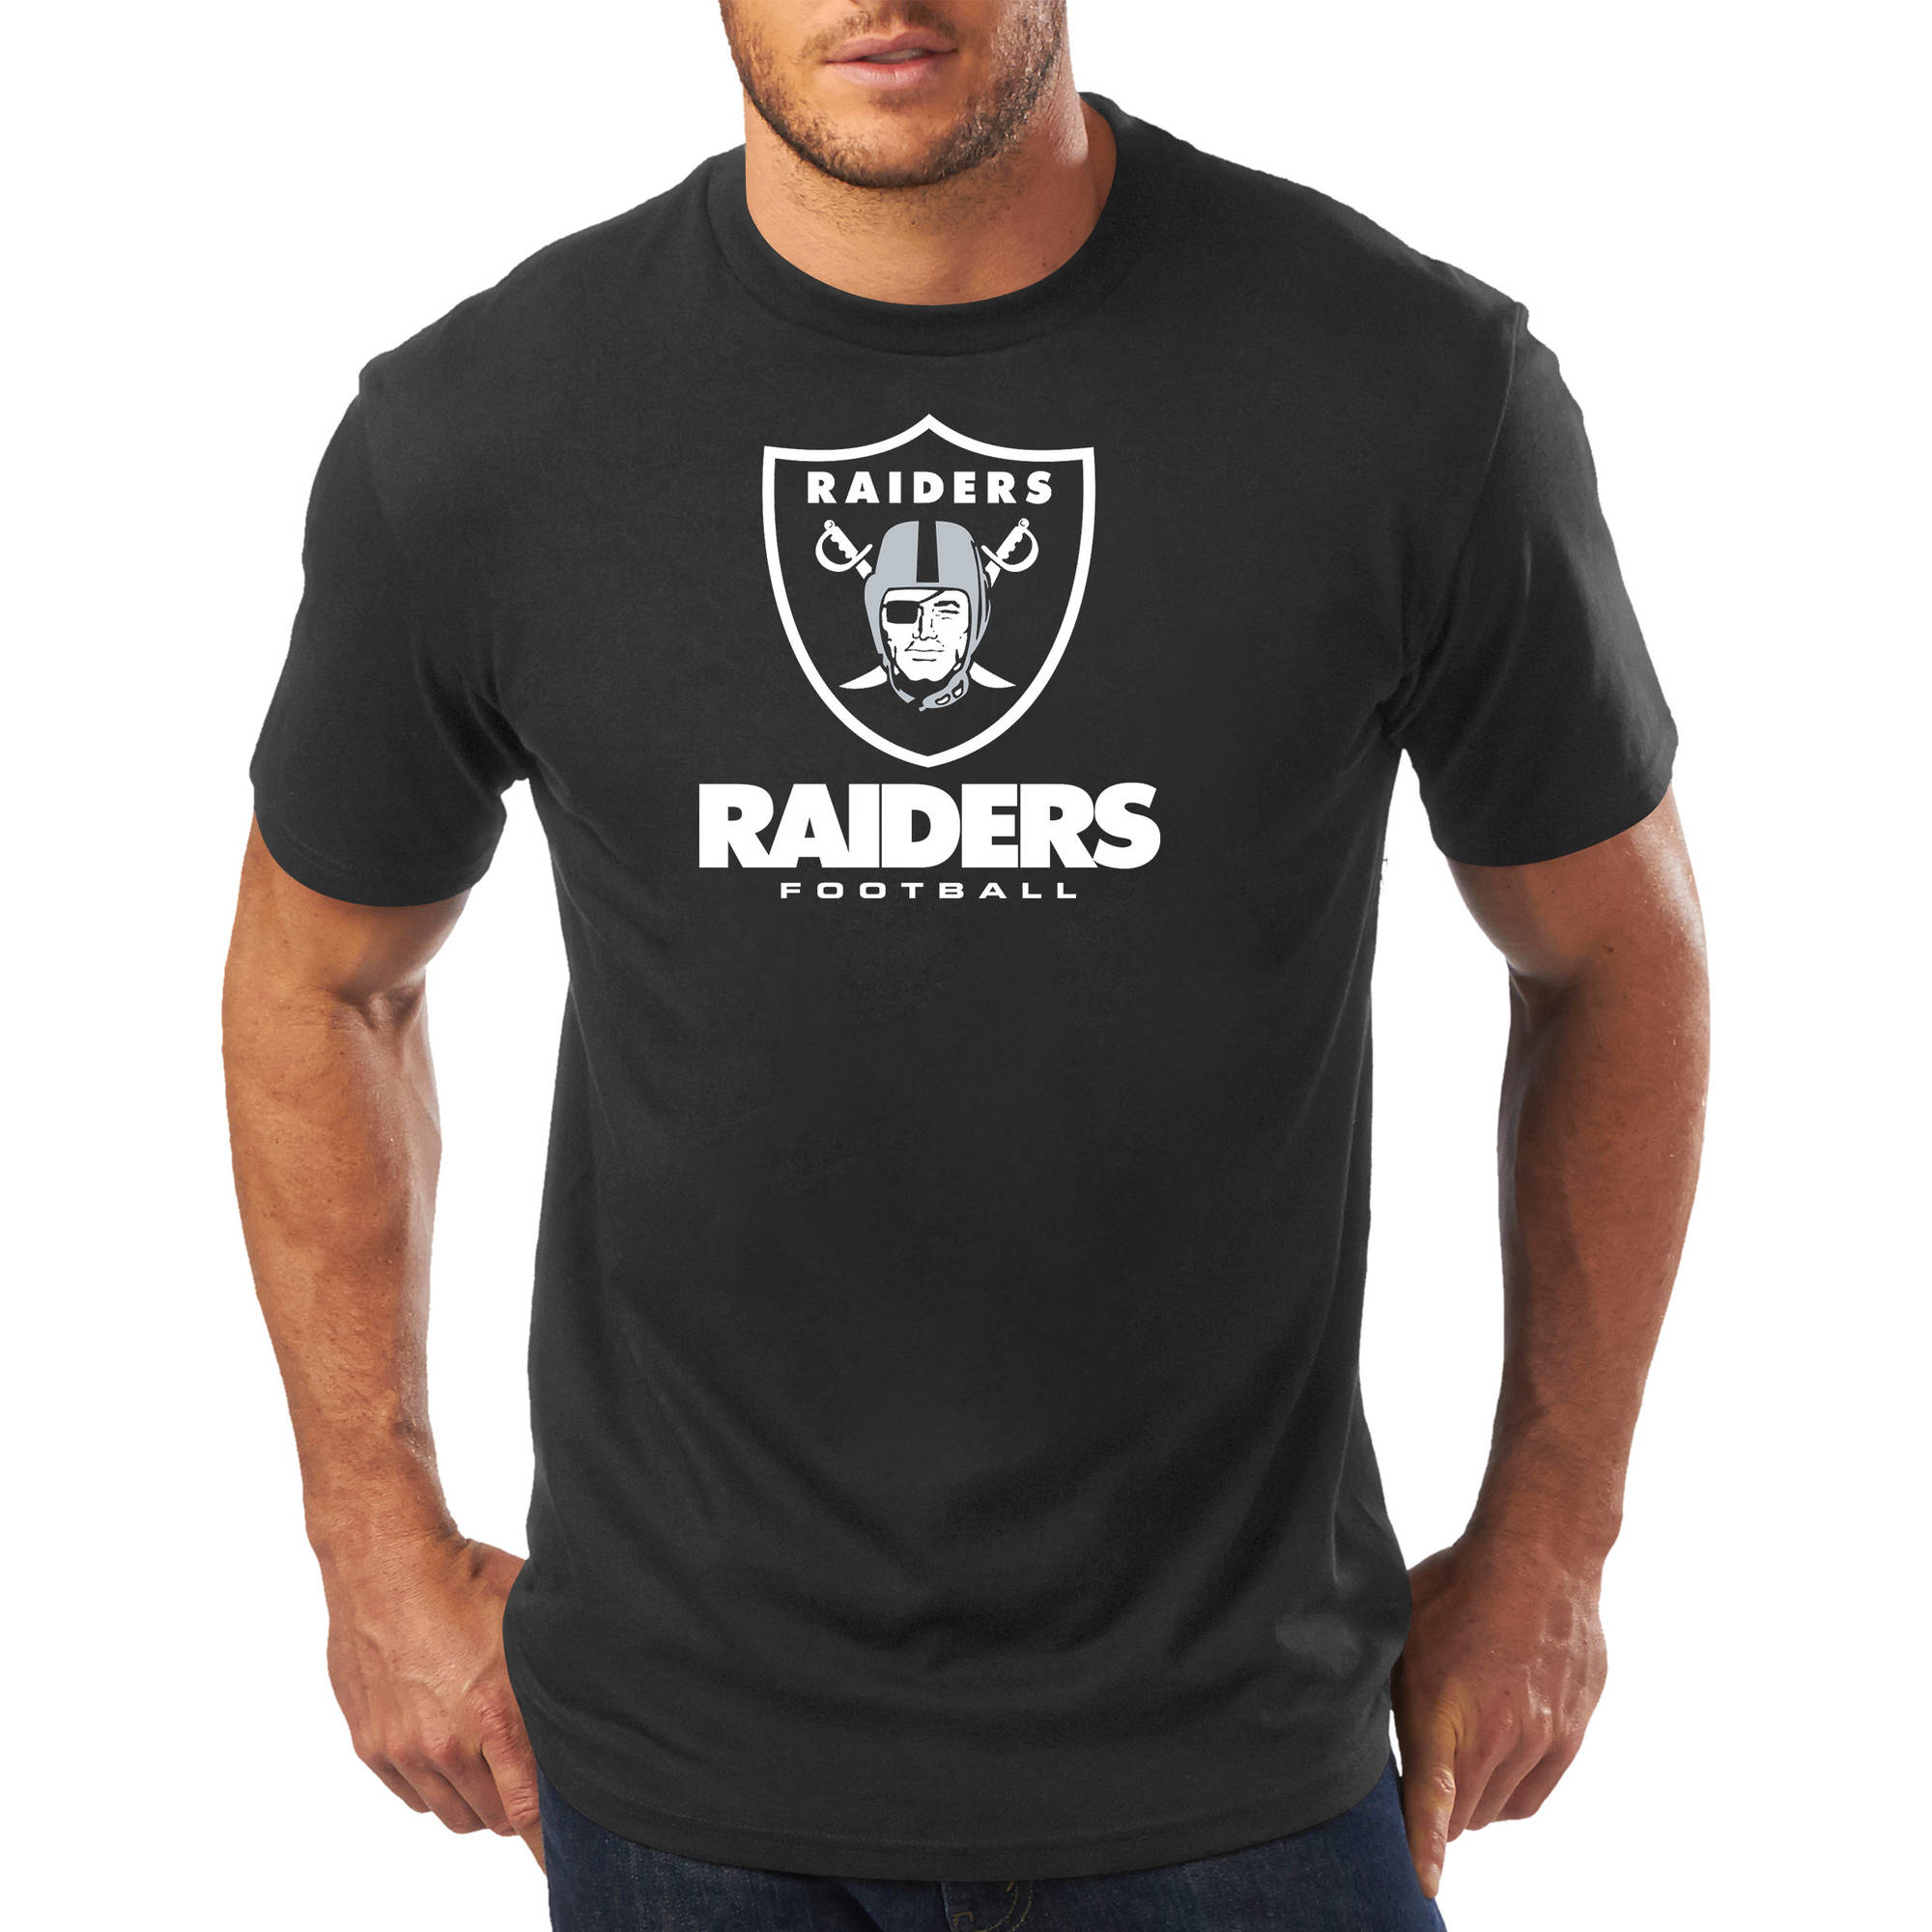 Big Men's NFL Oakland Raiders Short Sleeve Tee